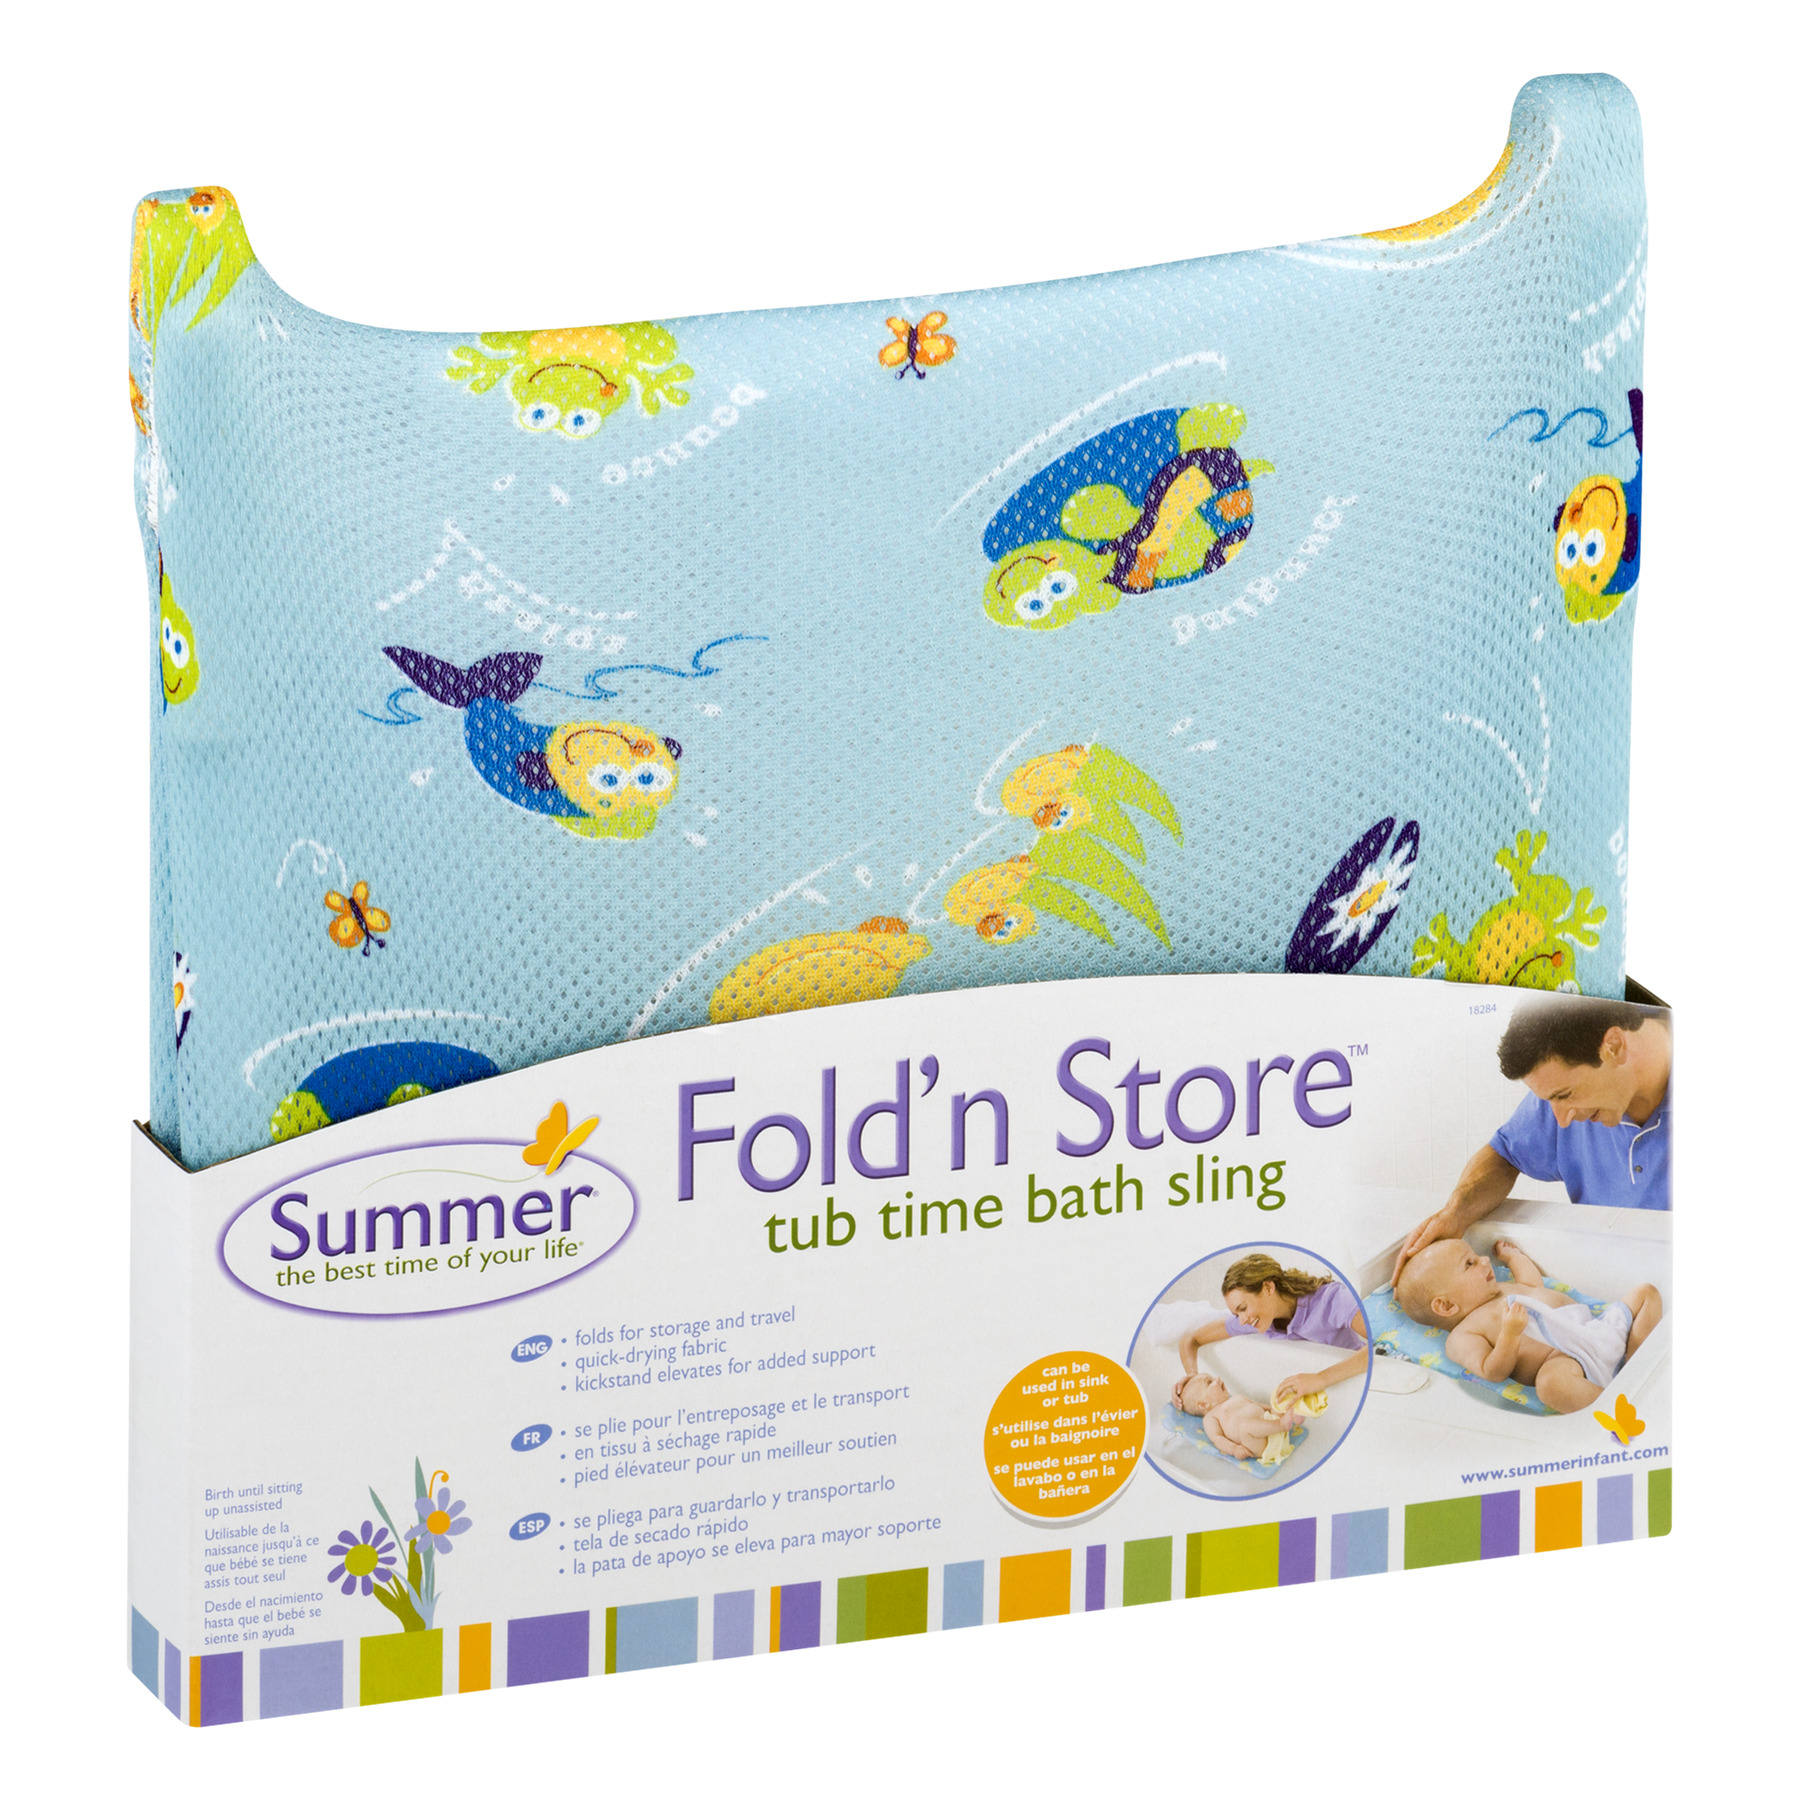 Summer foldn store tub time bath sling 1 0 ct walmart com